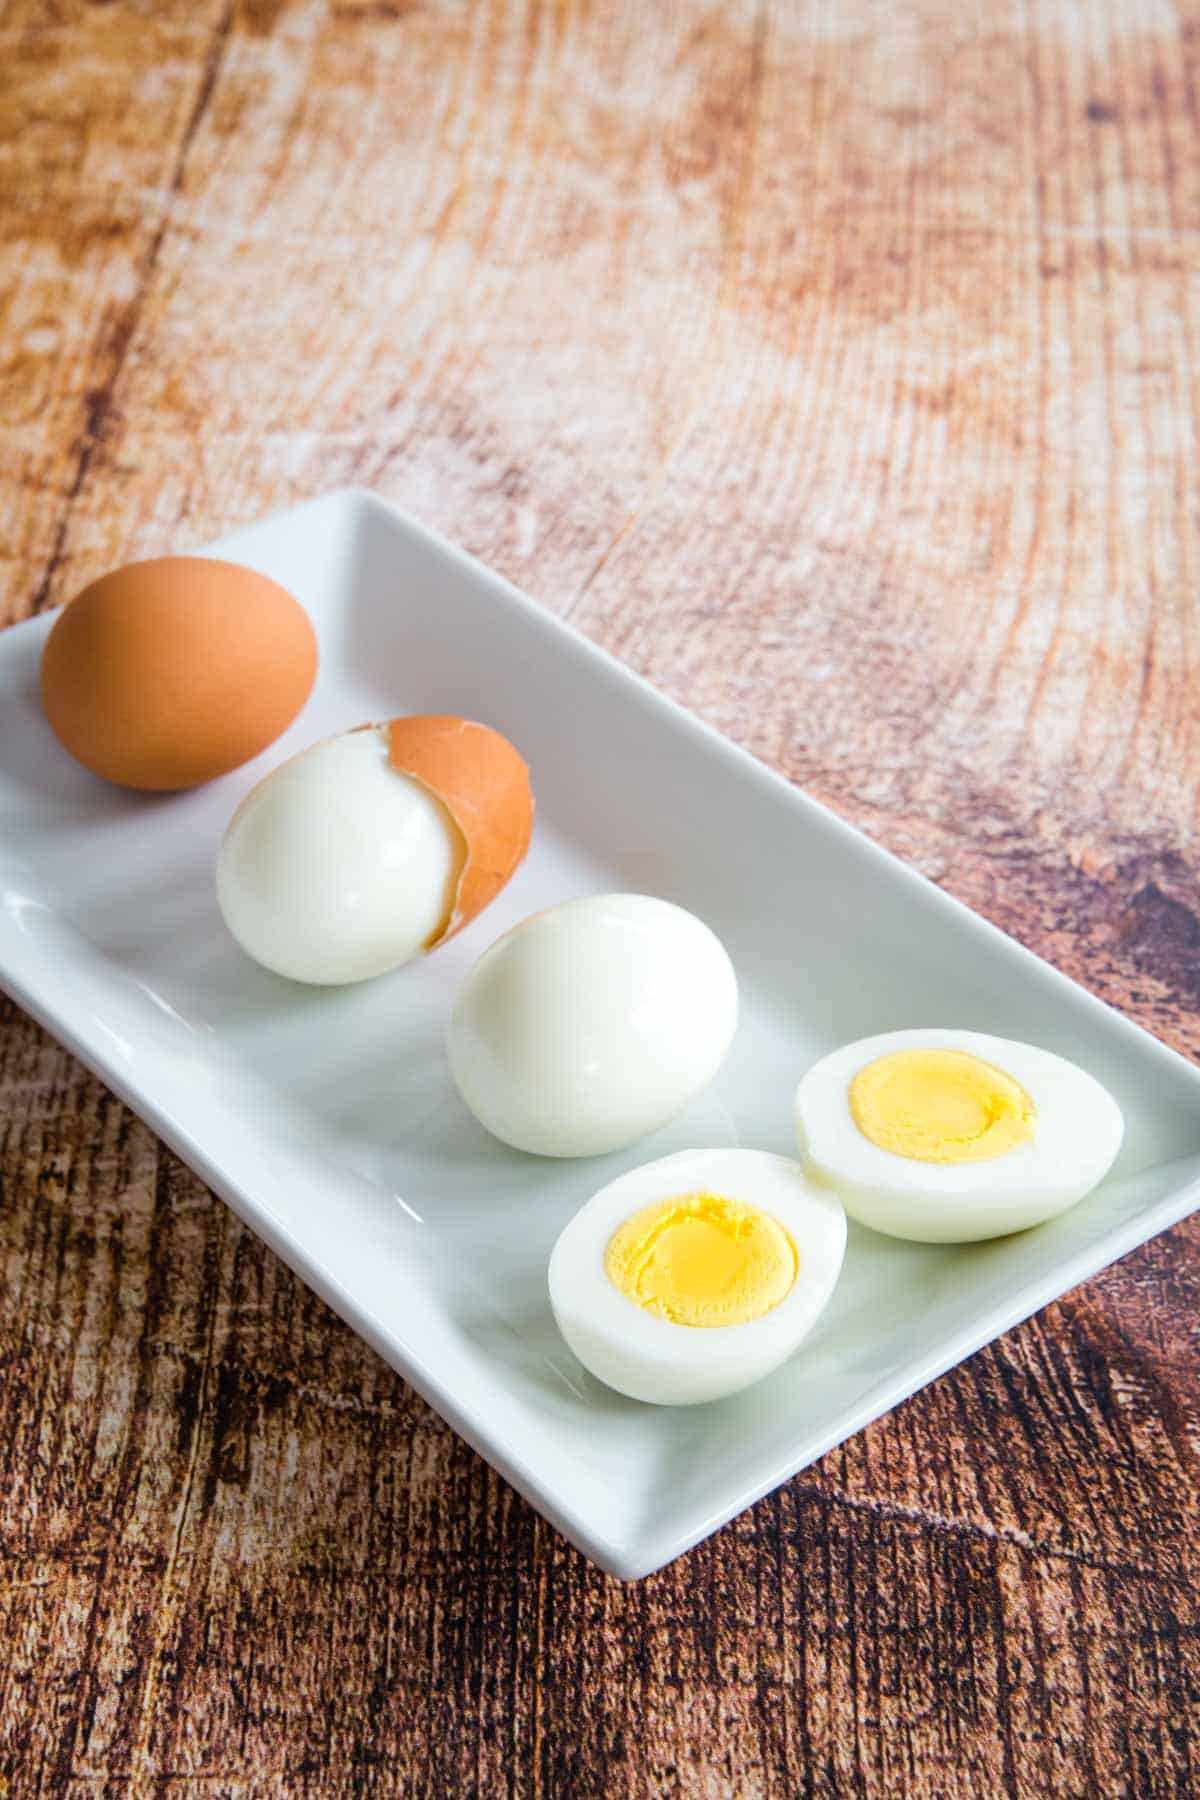 four hard boiled eggs on a plate, one in the shell, one partially peeled, one peeled, and one peeled and cut in half